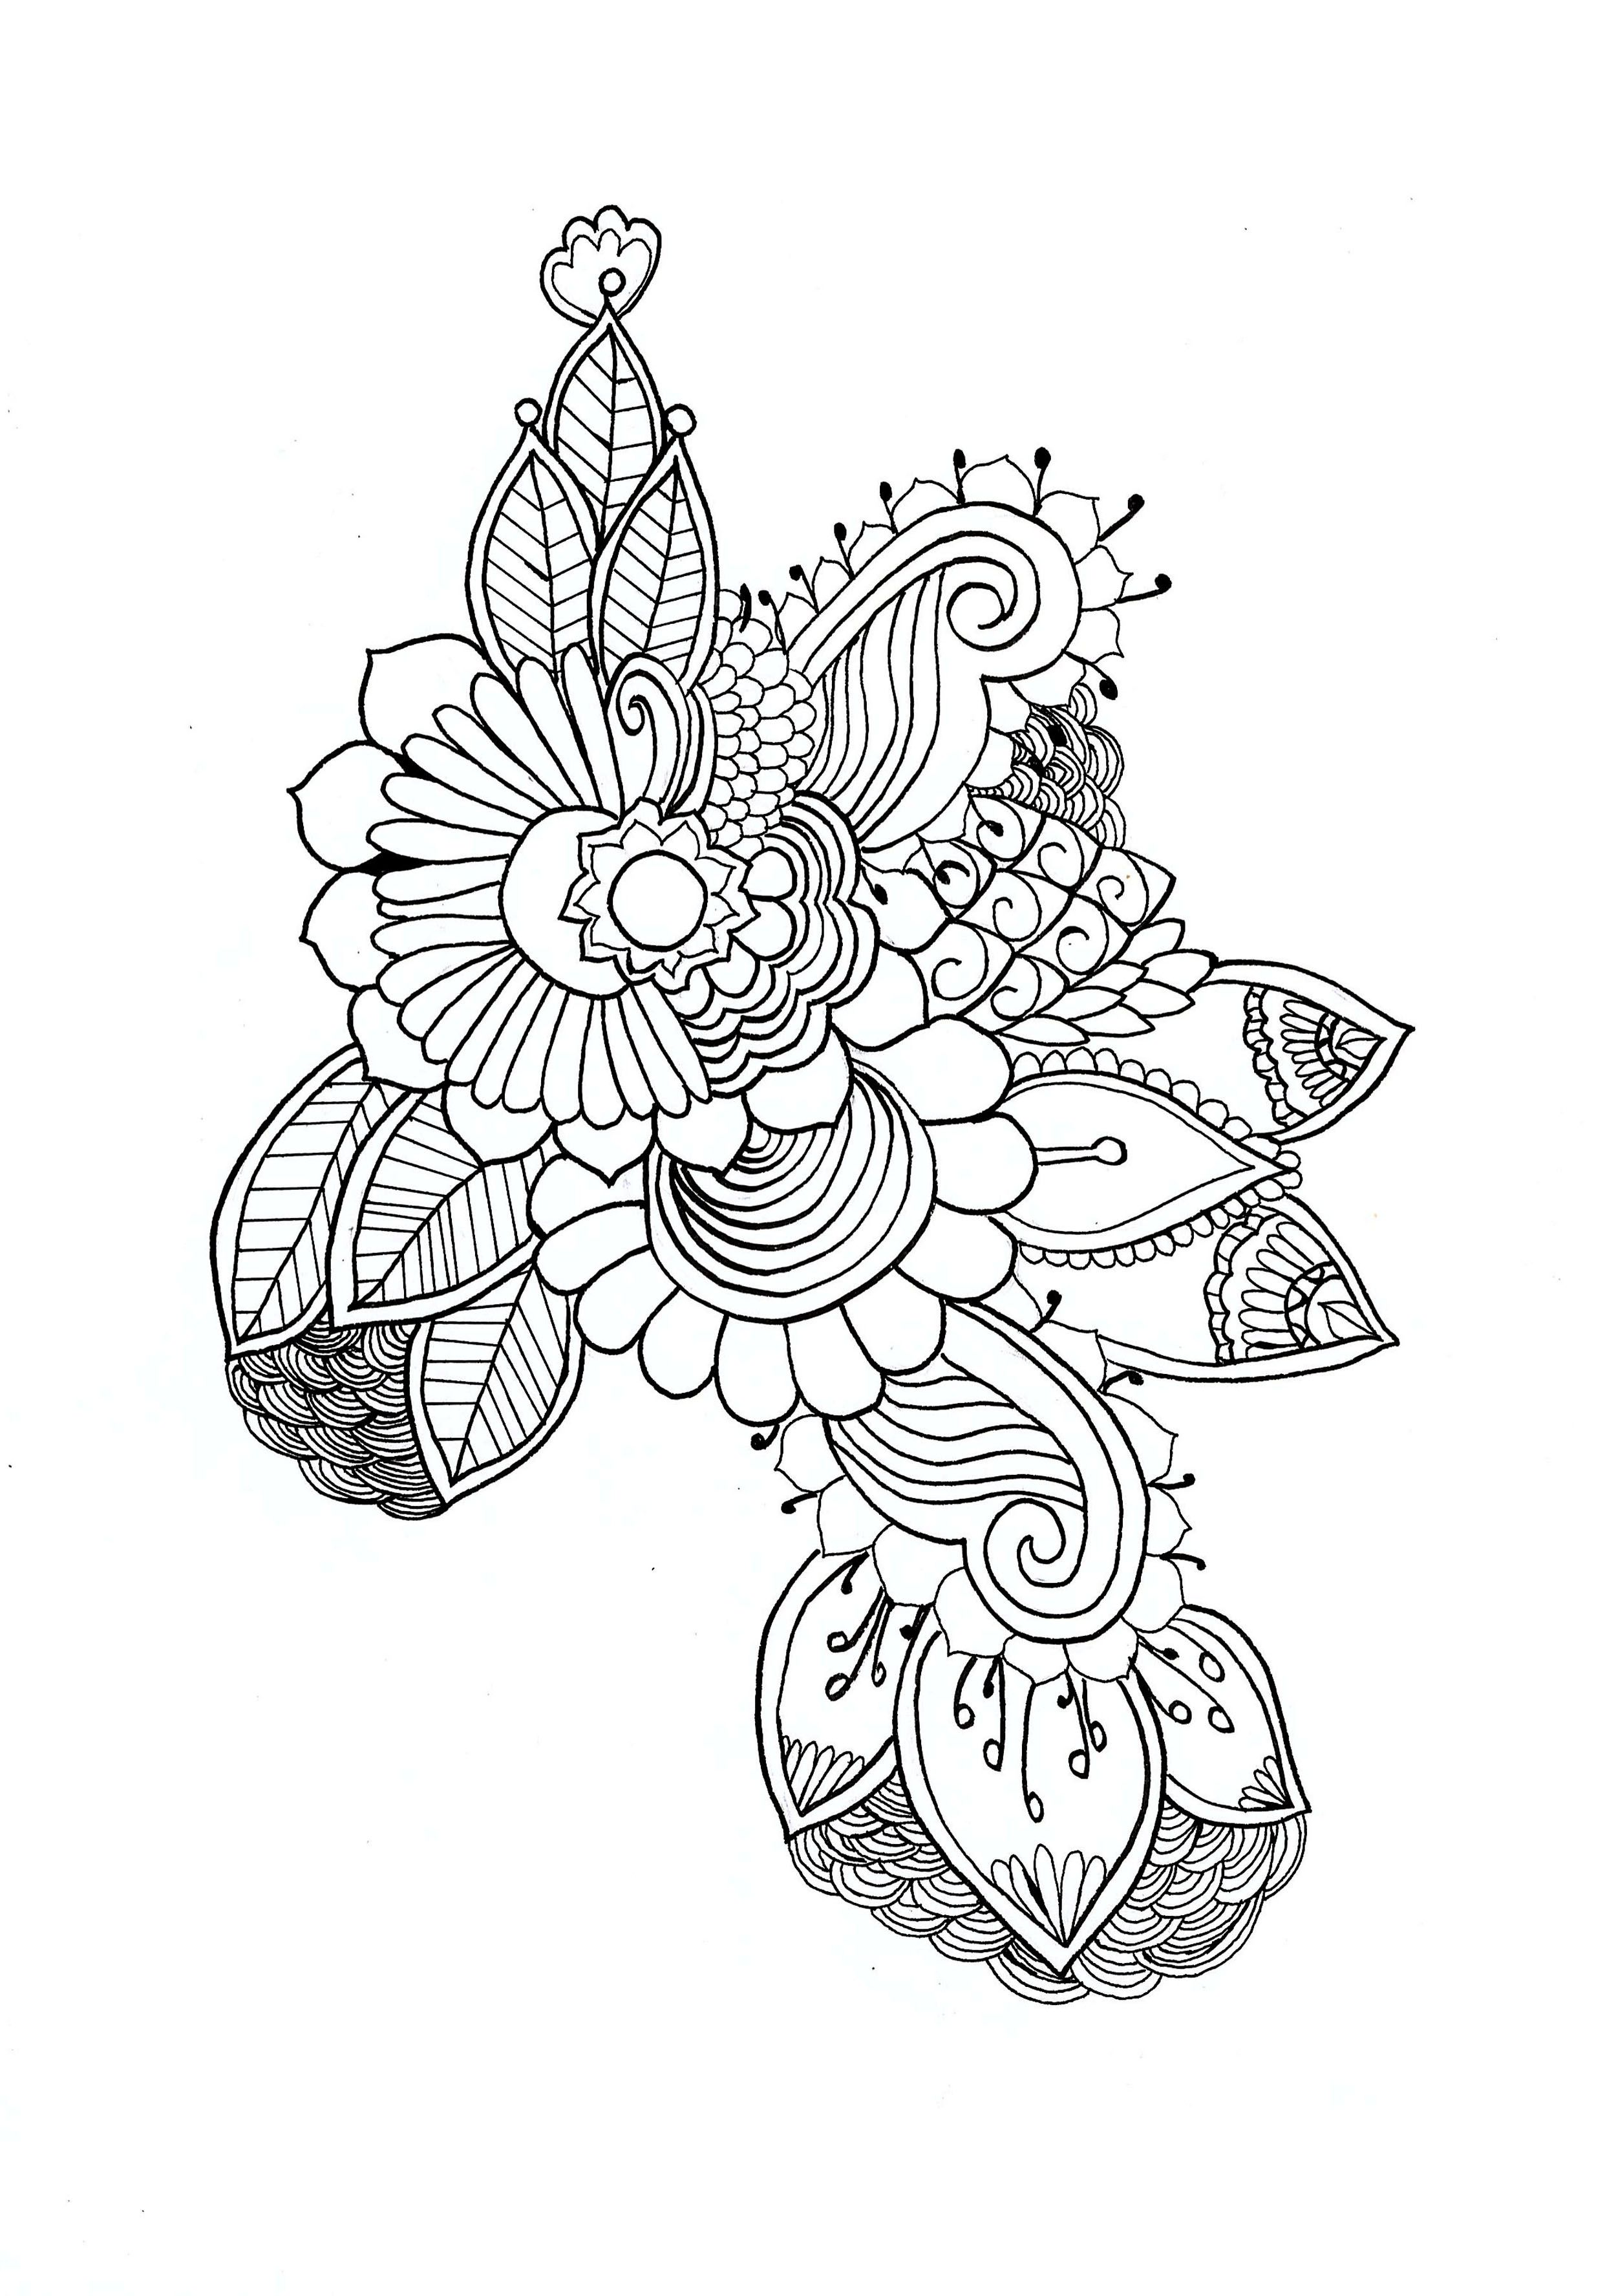 here are difficult mandalas coloring pages for adults to print for free mandala is a sanskrit word which means a circle and metaphorically a universe